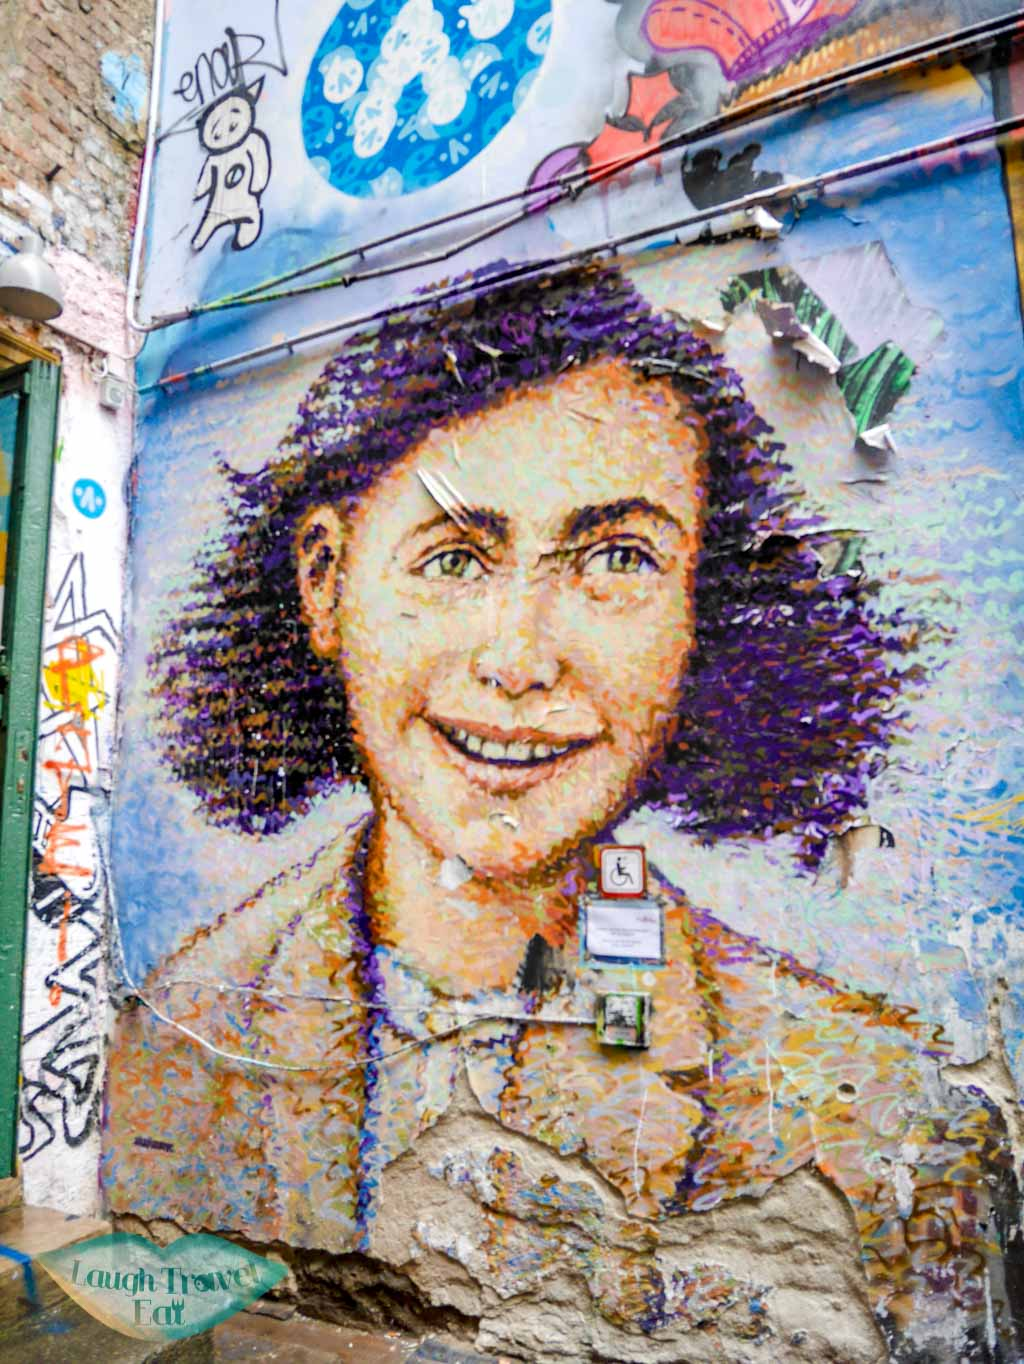 Anne-Frank-Zentrum-Berlin-Germany-Laugh-Travel-Eat